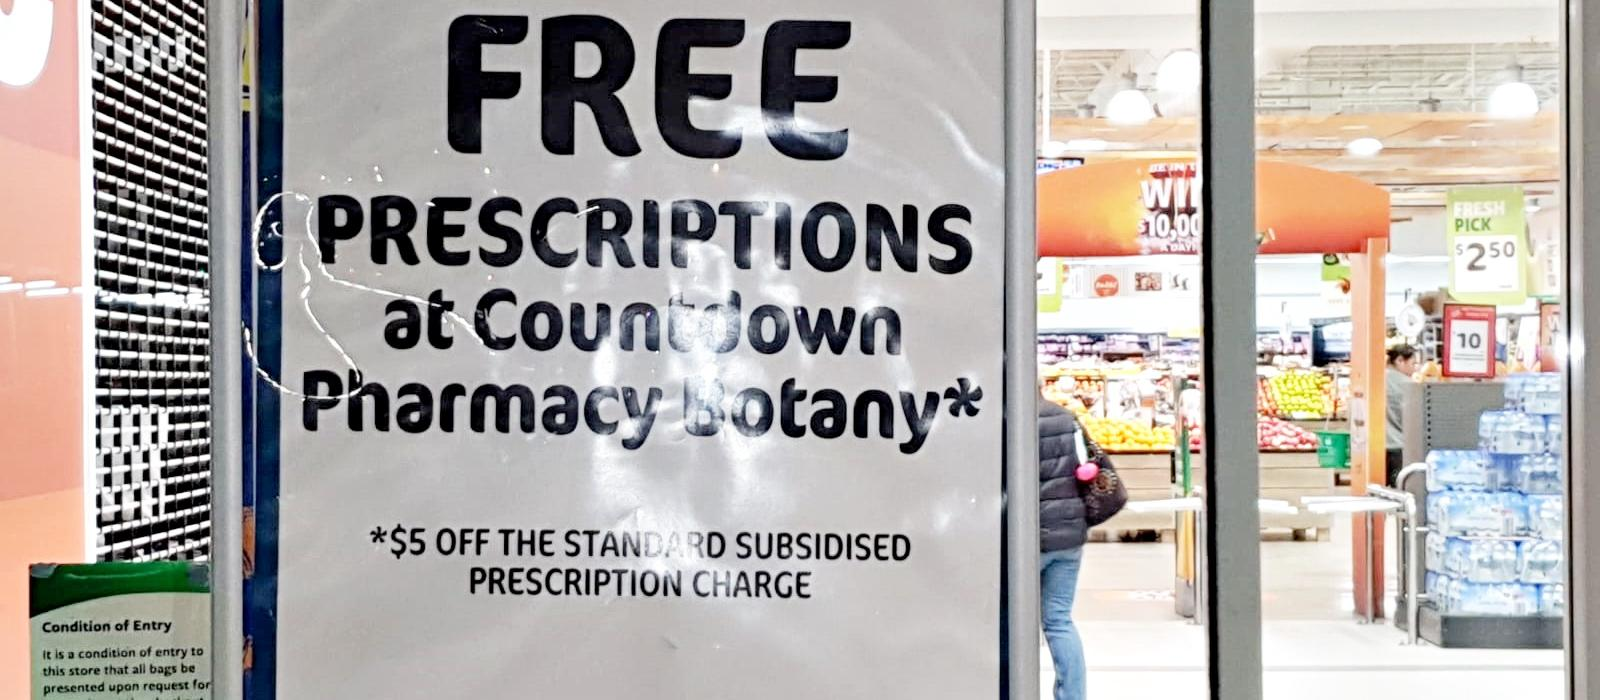 Countdown Botany Pharmacy